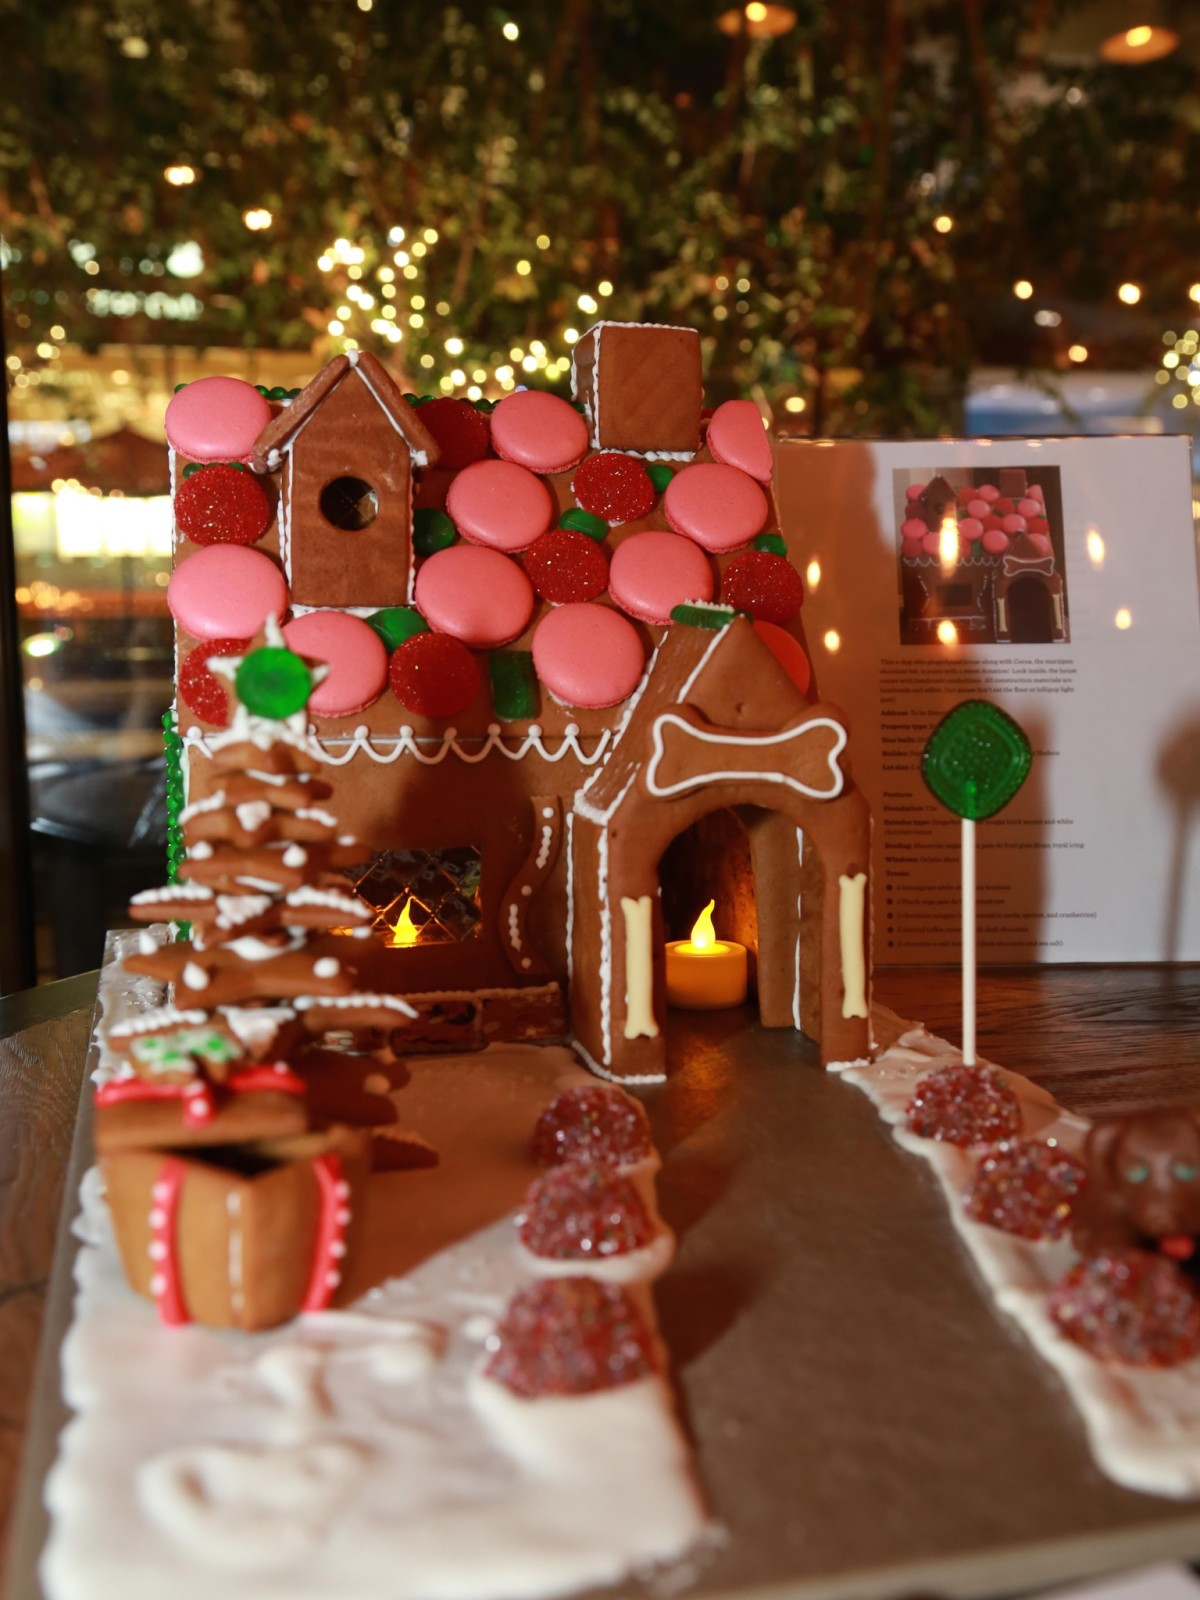 Gingerbread dog house Hubble & Hudson